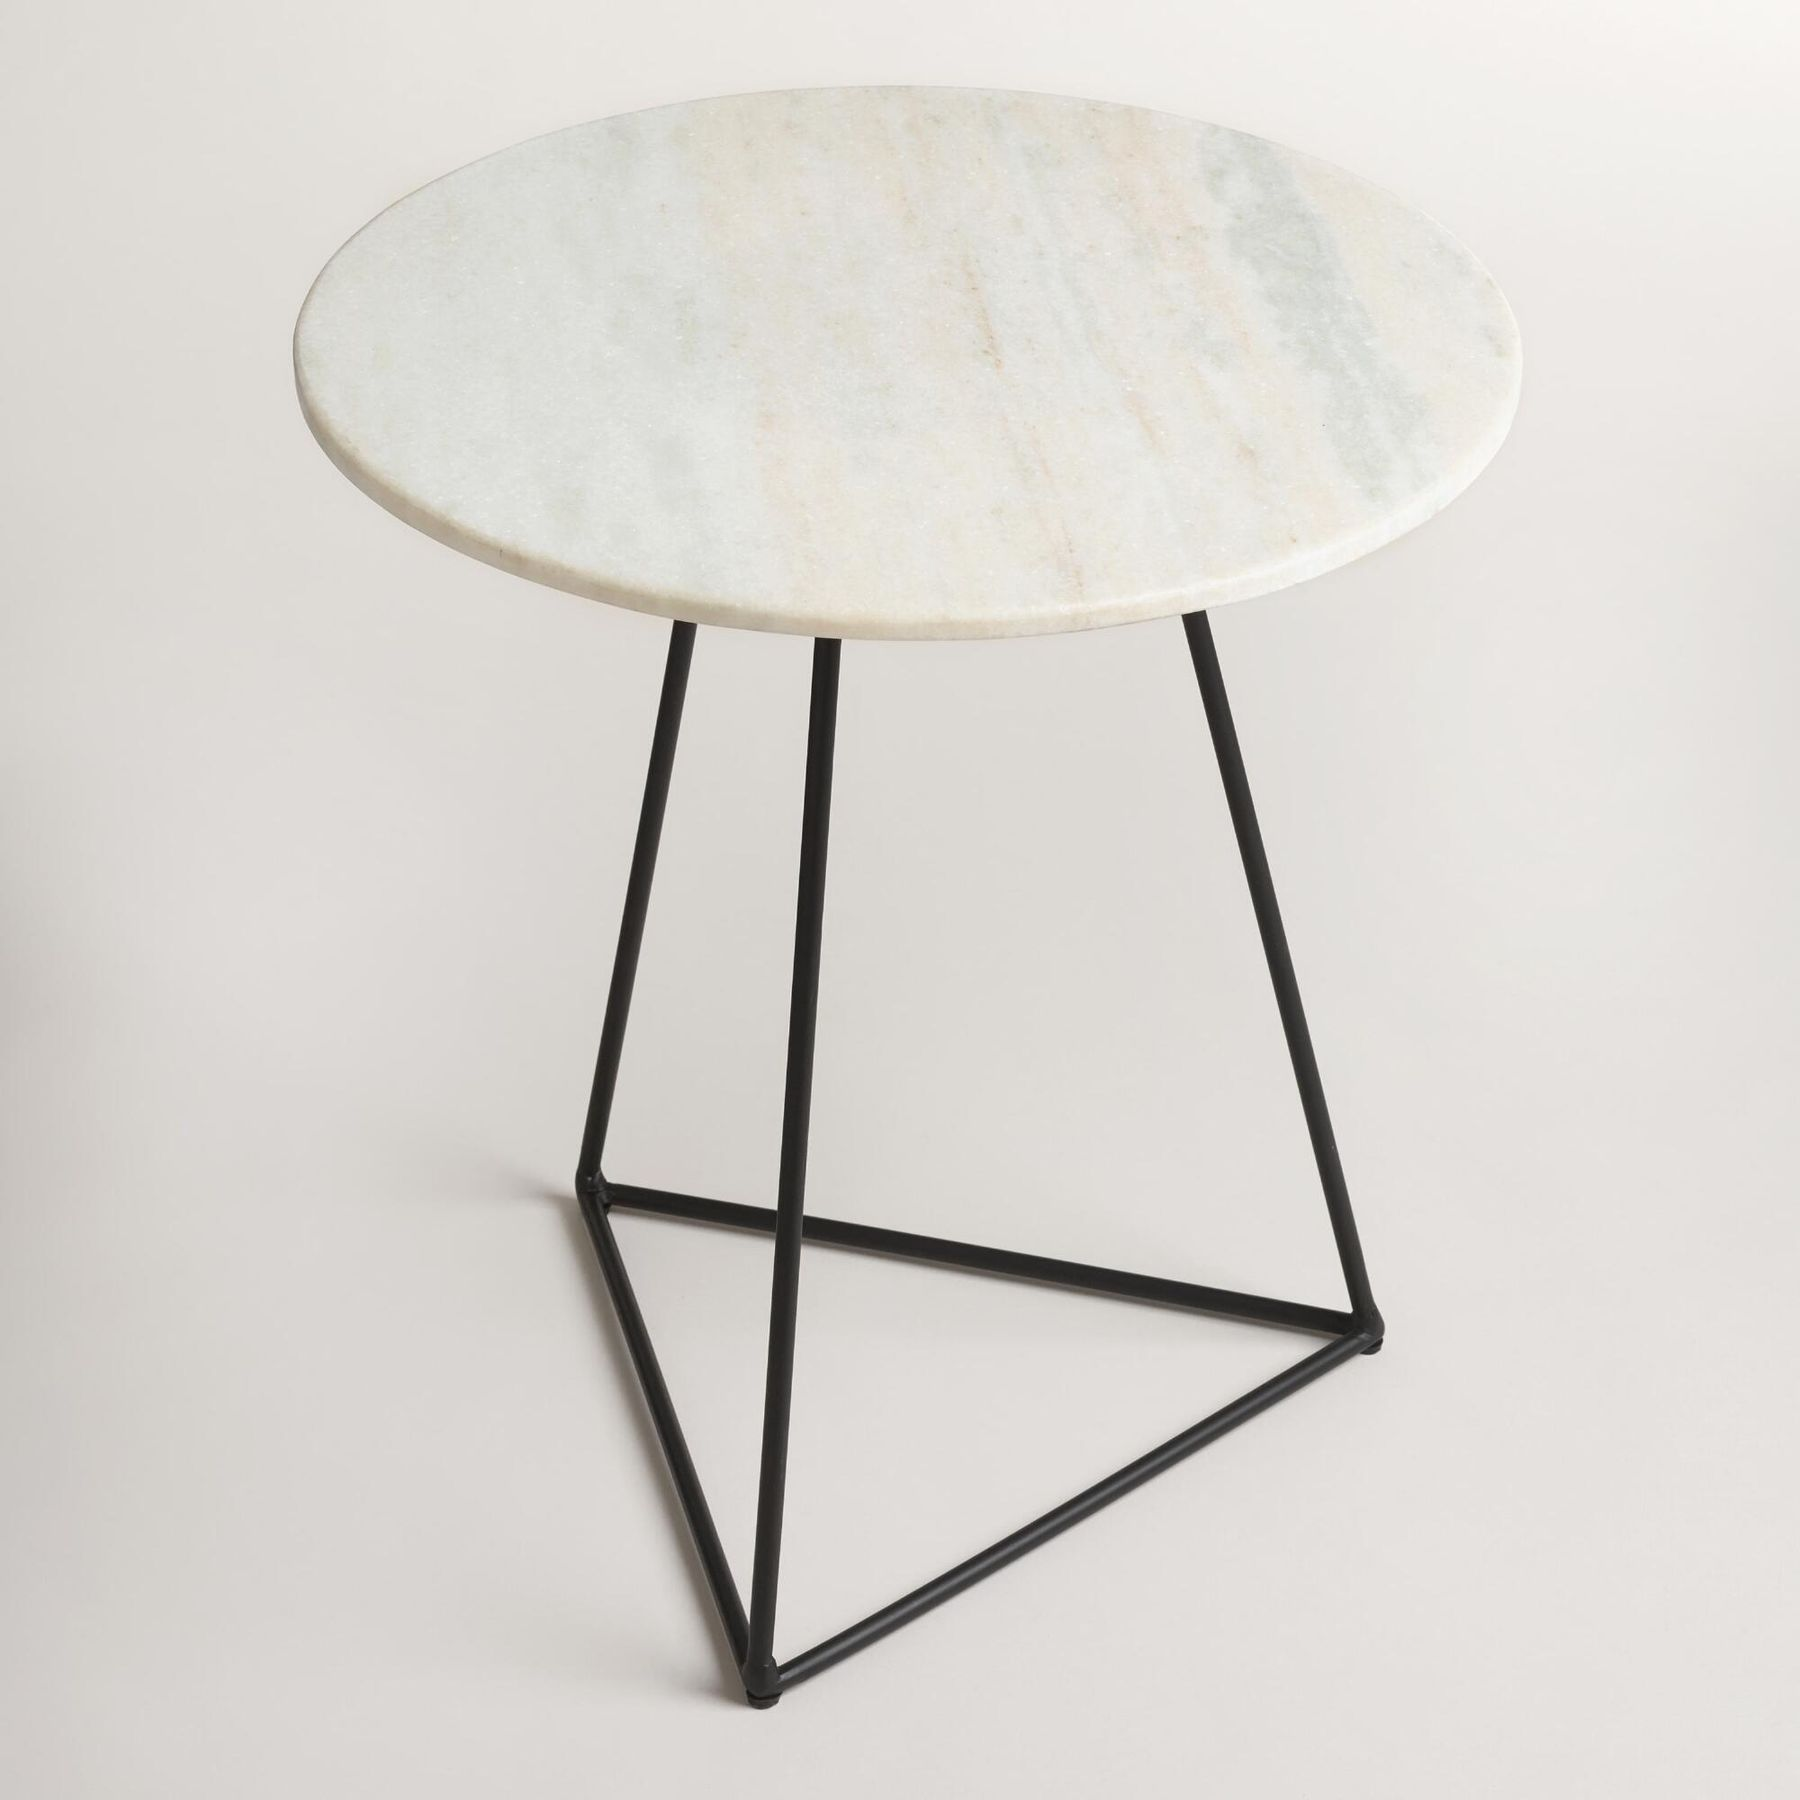 stylish side tables under things for home table living small metal accent with round white marble top and black steel base leather ott coffee ashley chairside modern dining room